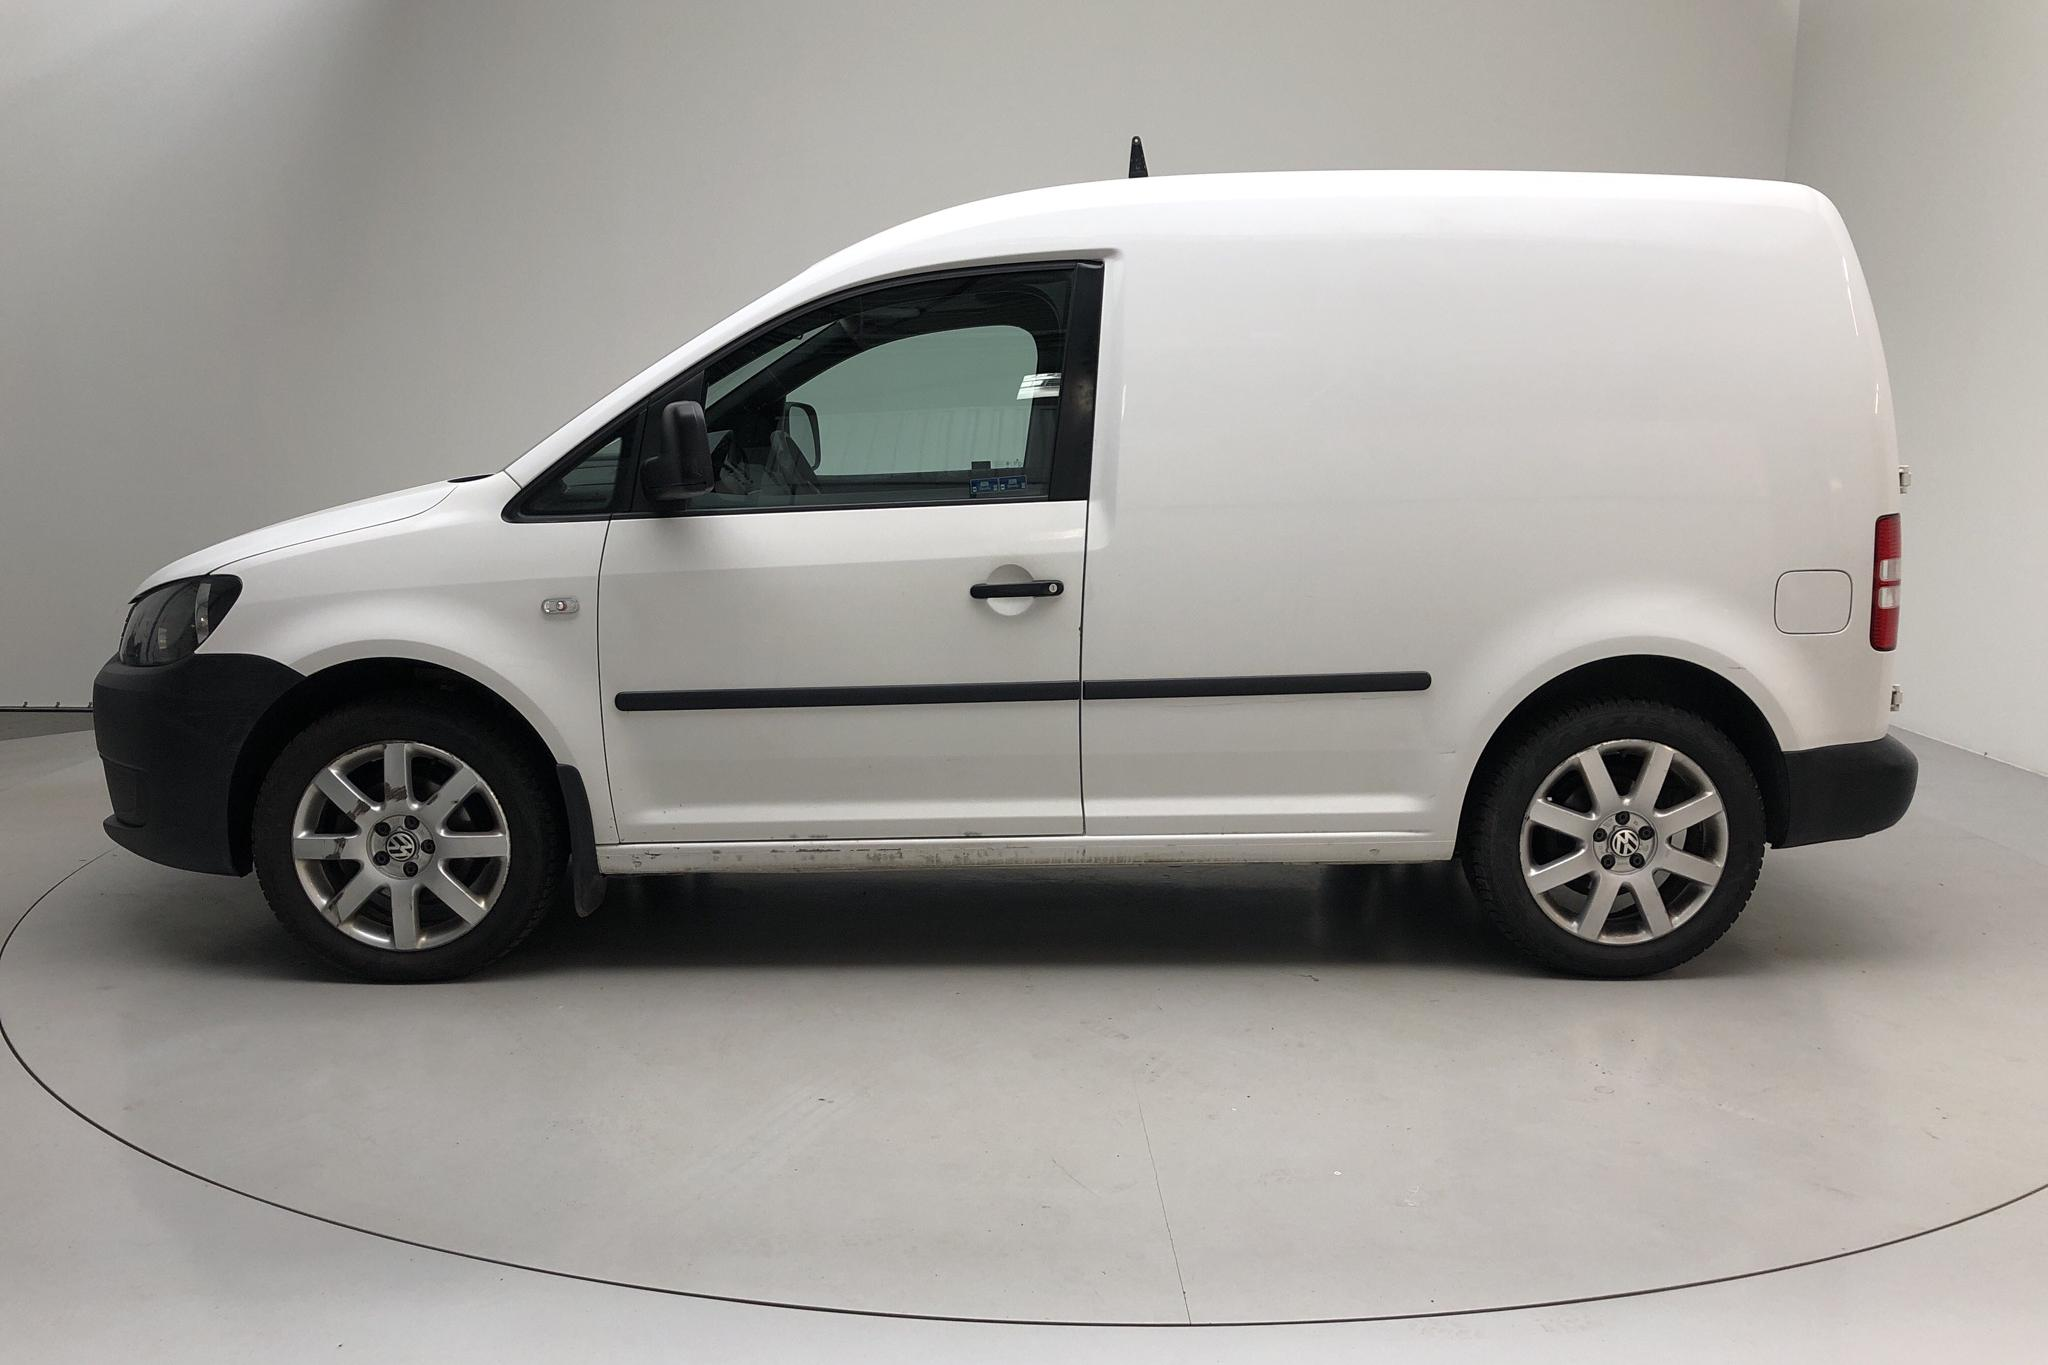 VW Caddy 1.6 TDI Skåp (102hk) - 219 960 km - Automatic - white - 2011